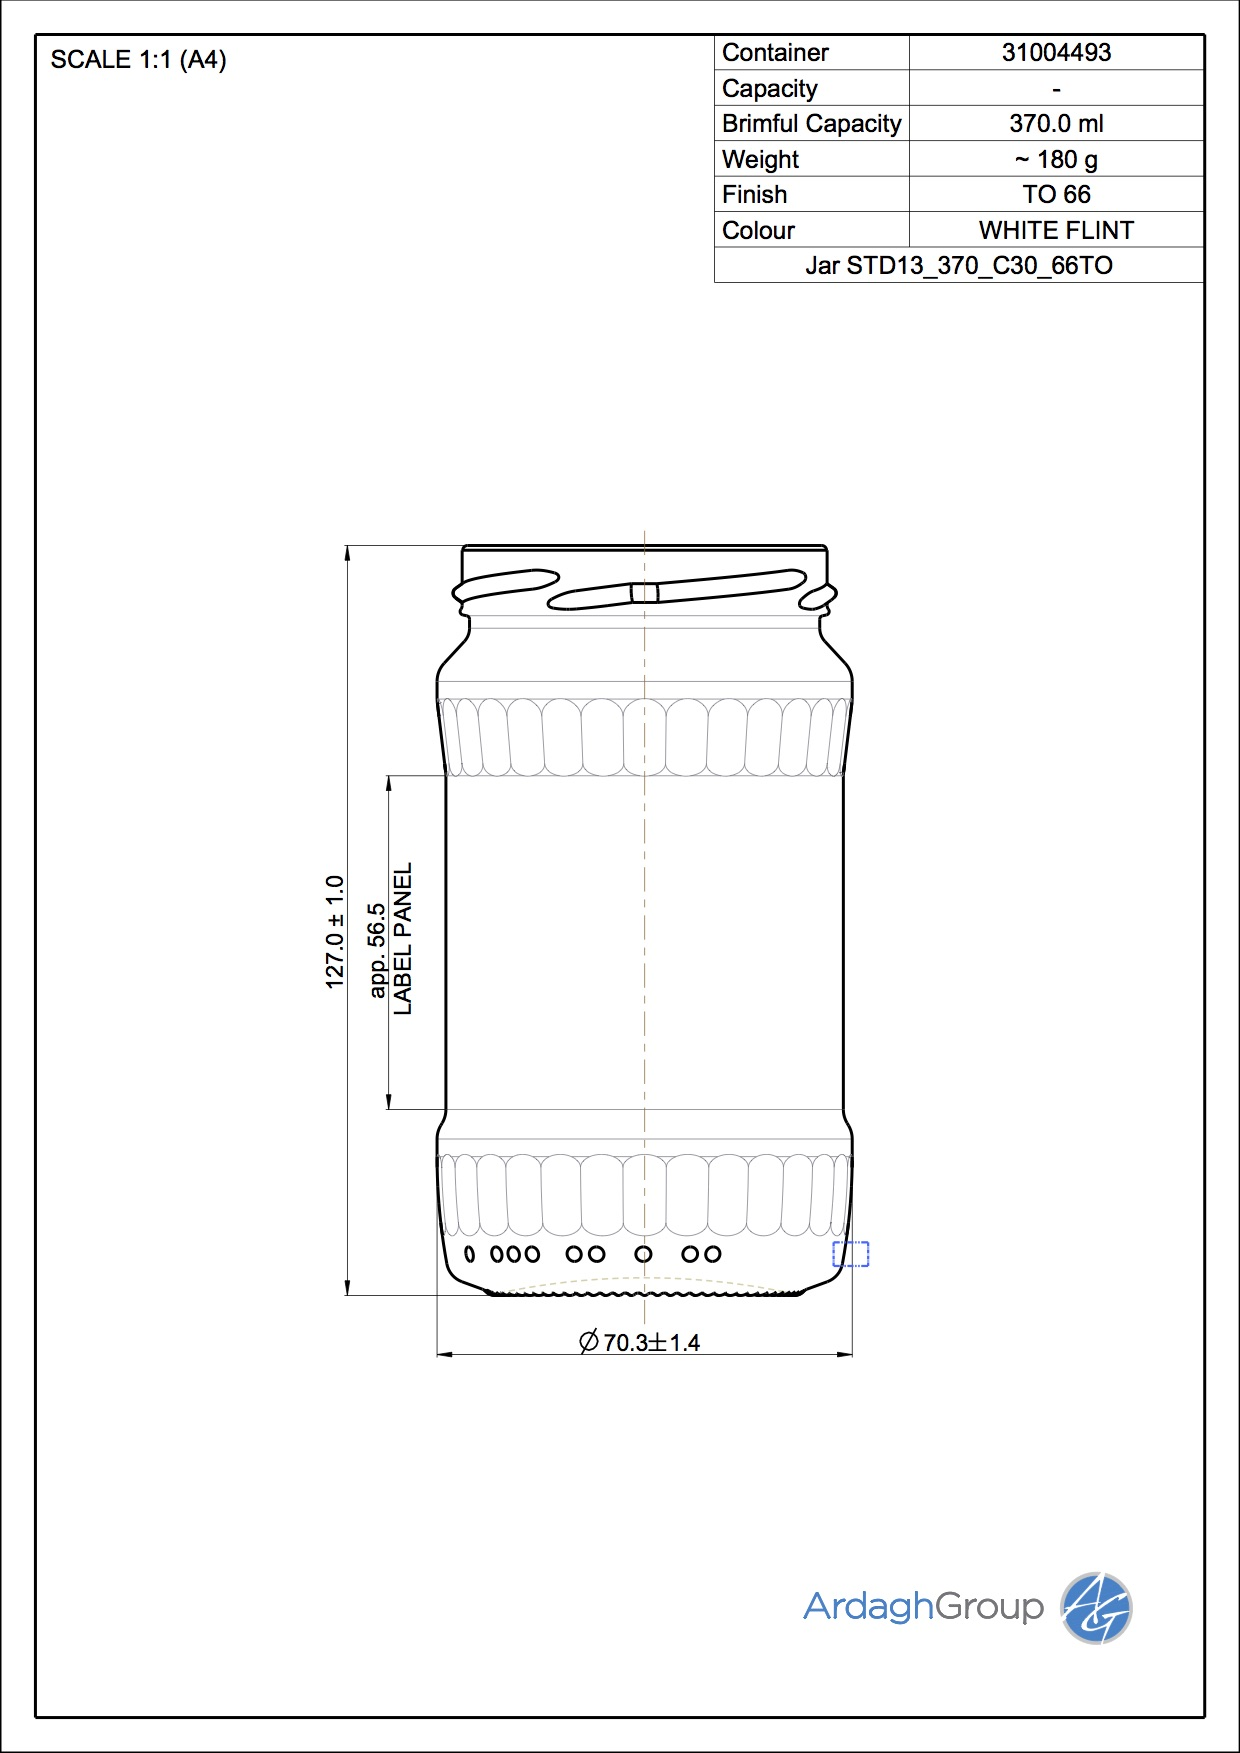 Jar STD13 370 C30 66TO